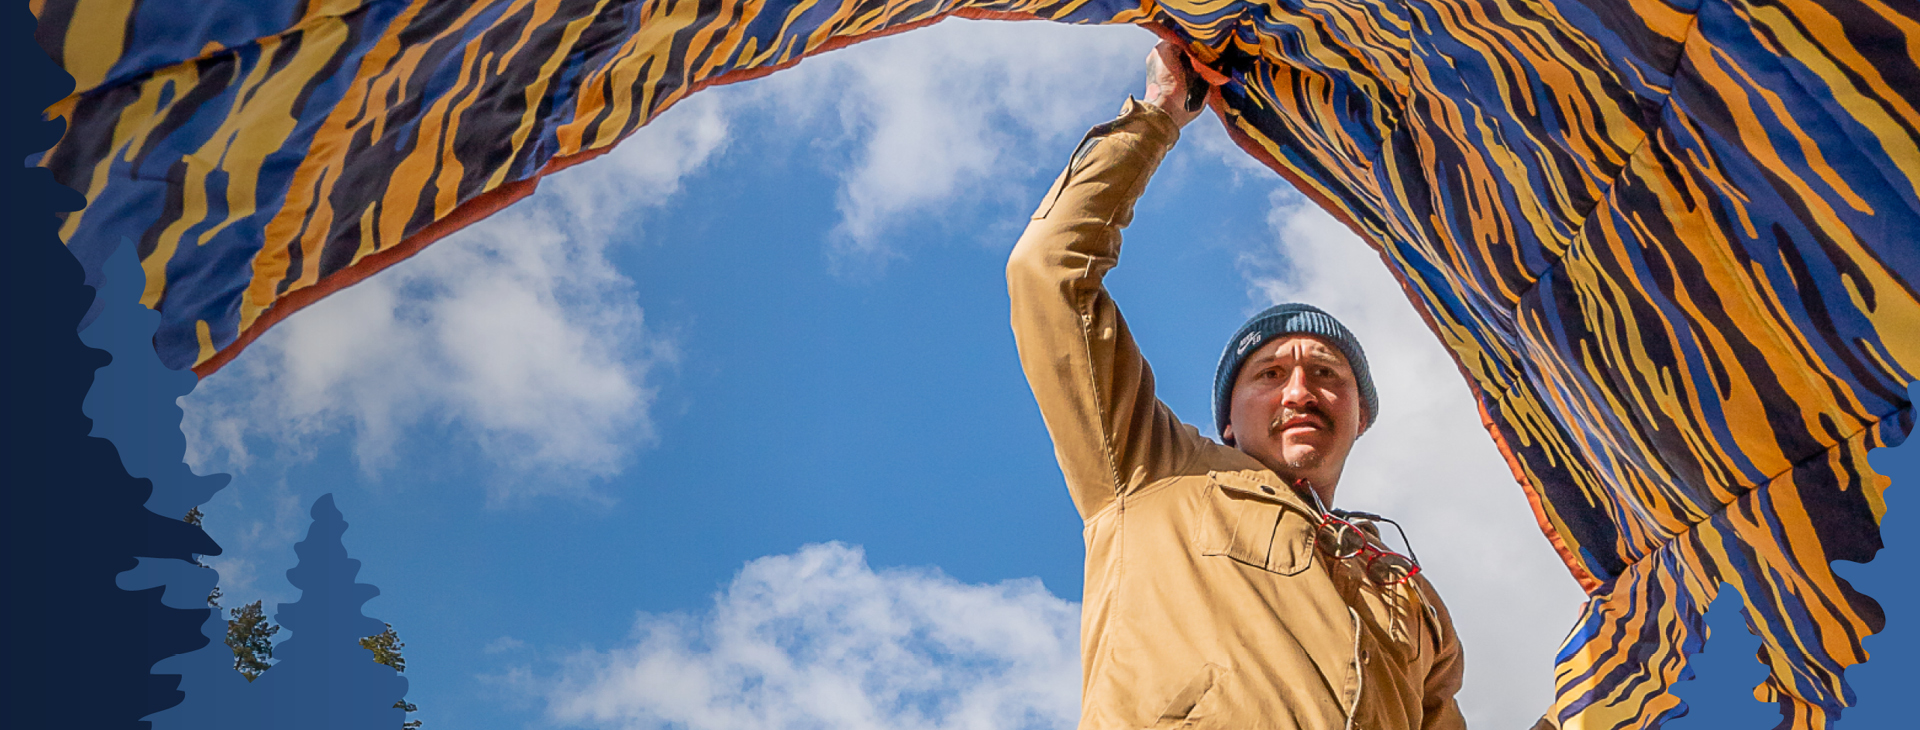 Man with blue and orange blanket, with blue sky in the background.